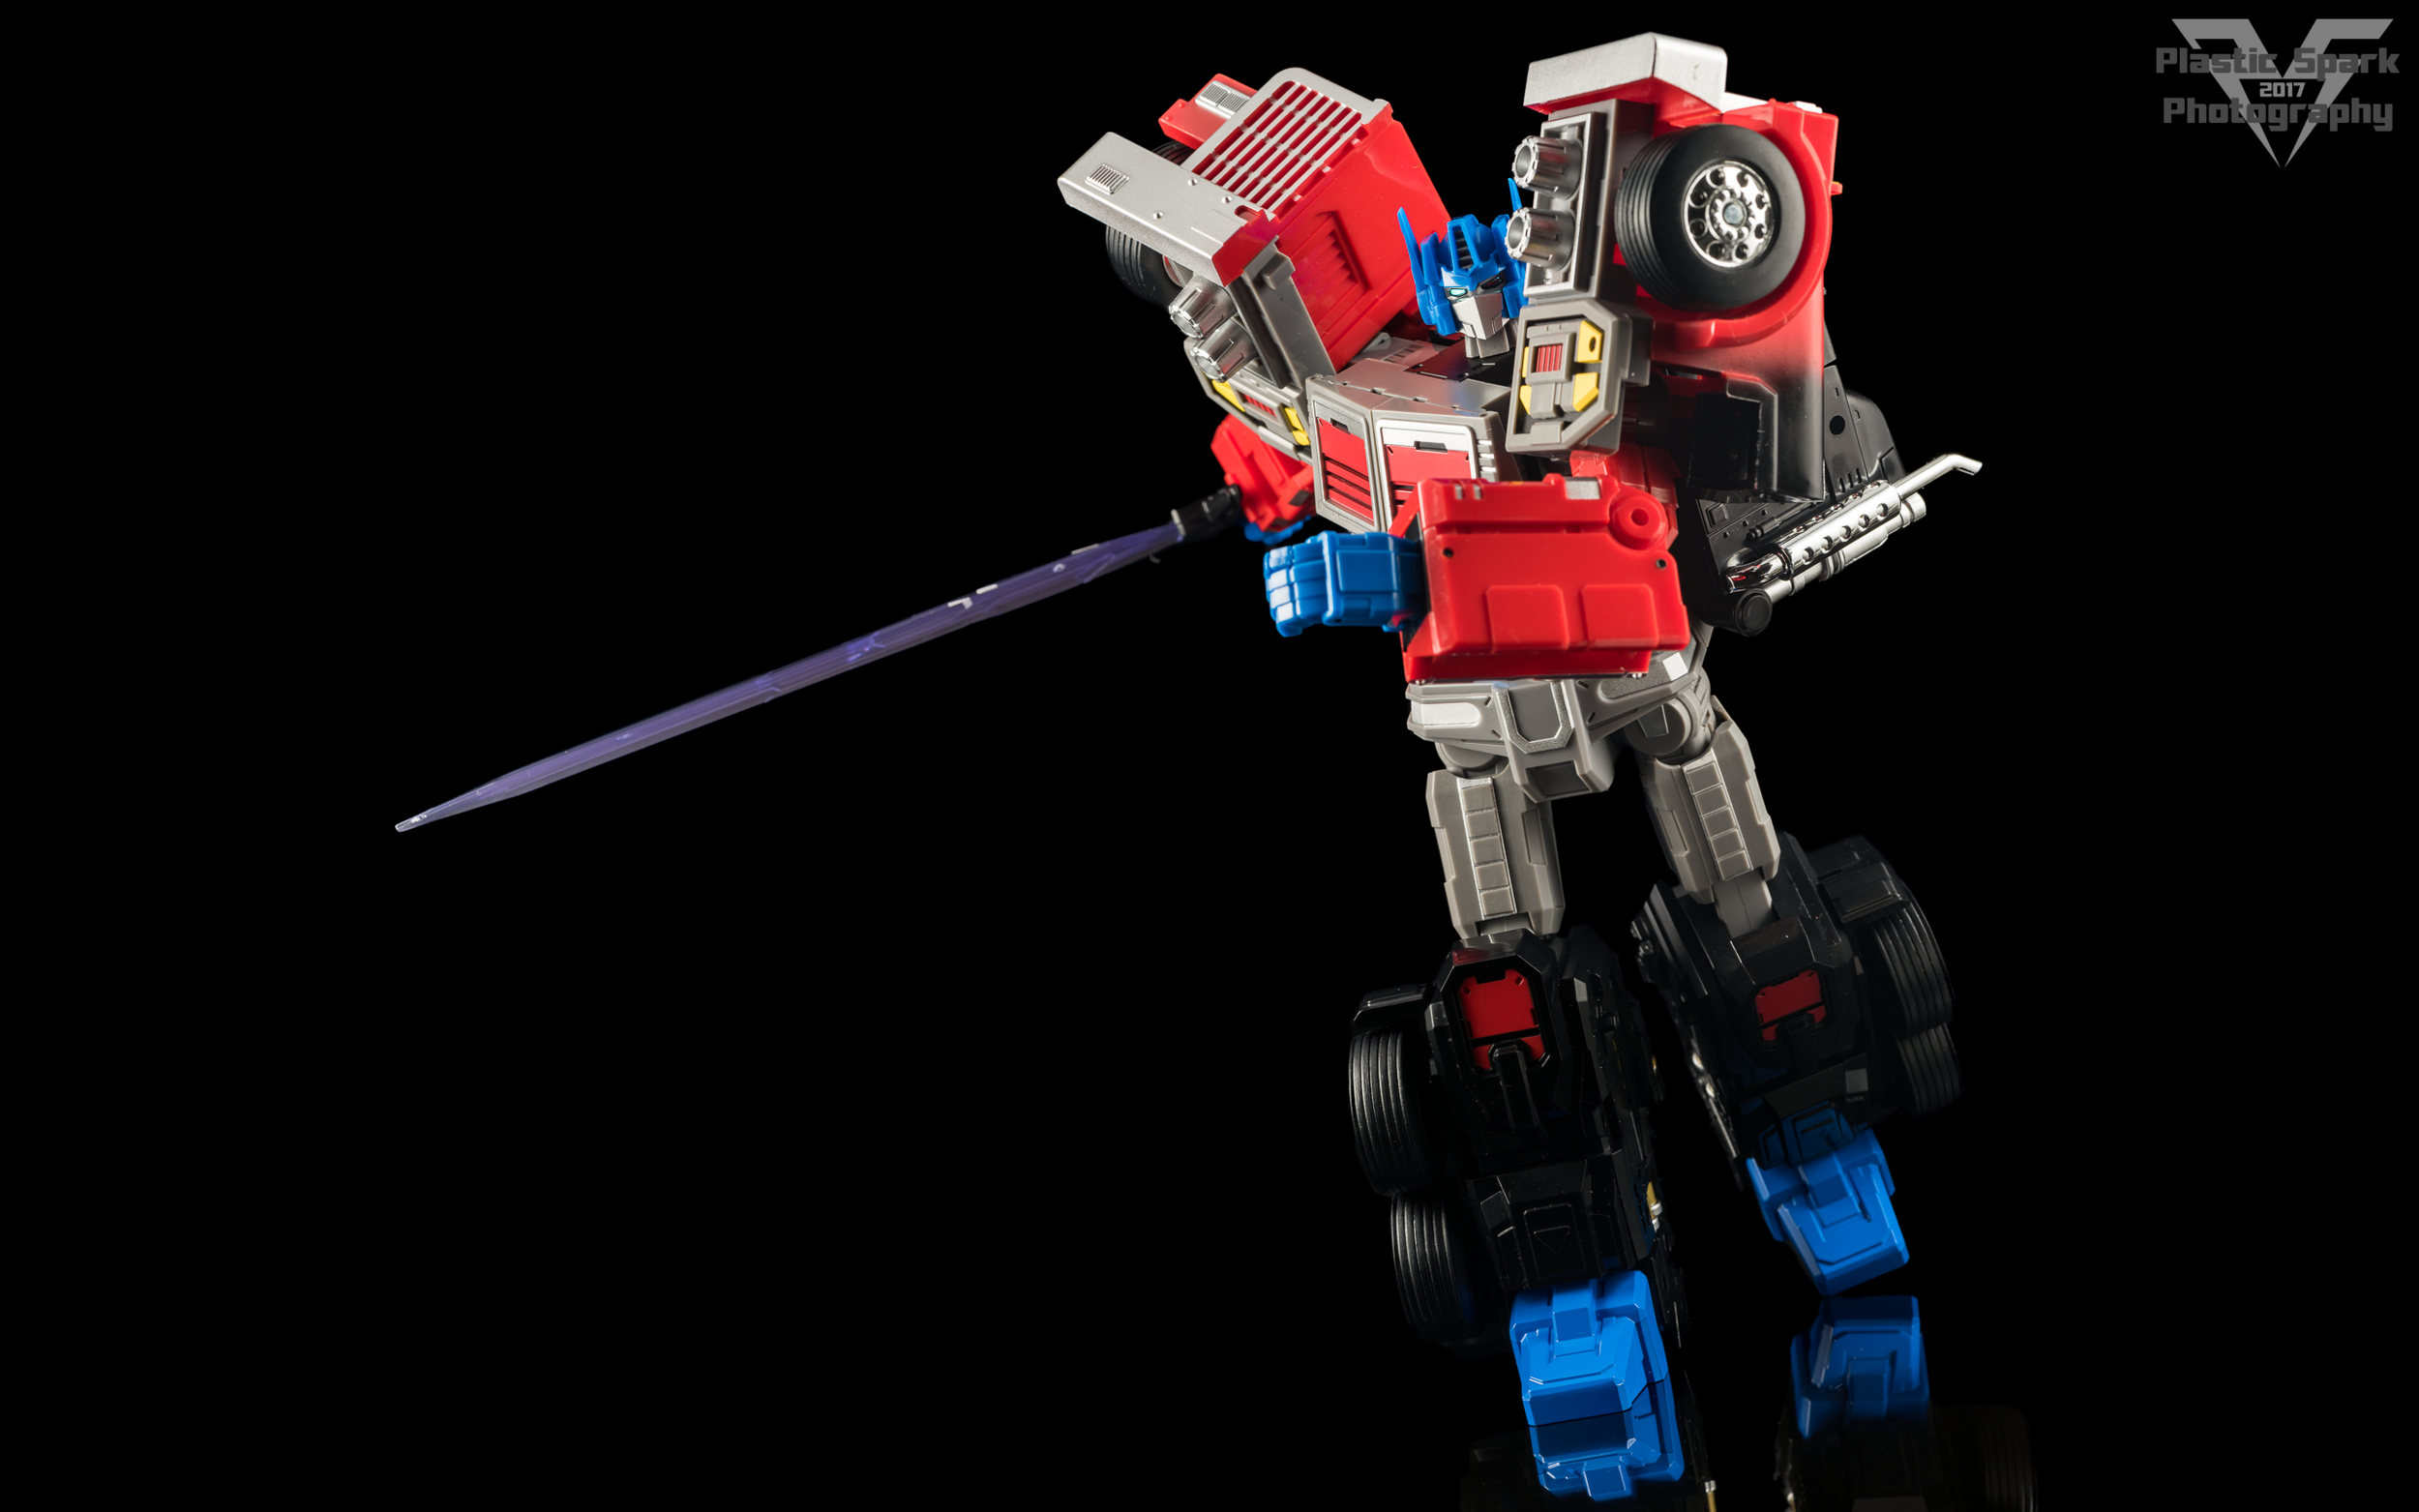 Fans-Hobby-MB-04-Gunfighter-II-(36-of-61).png